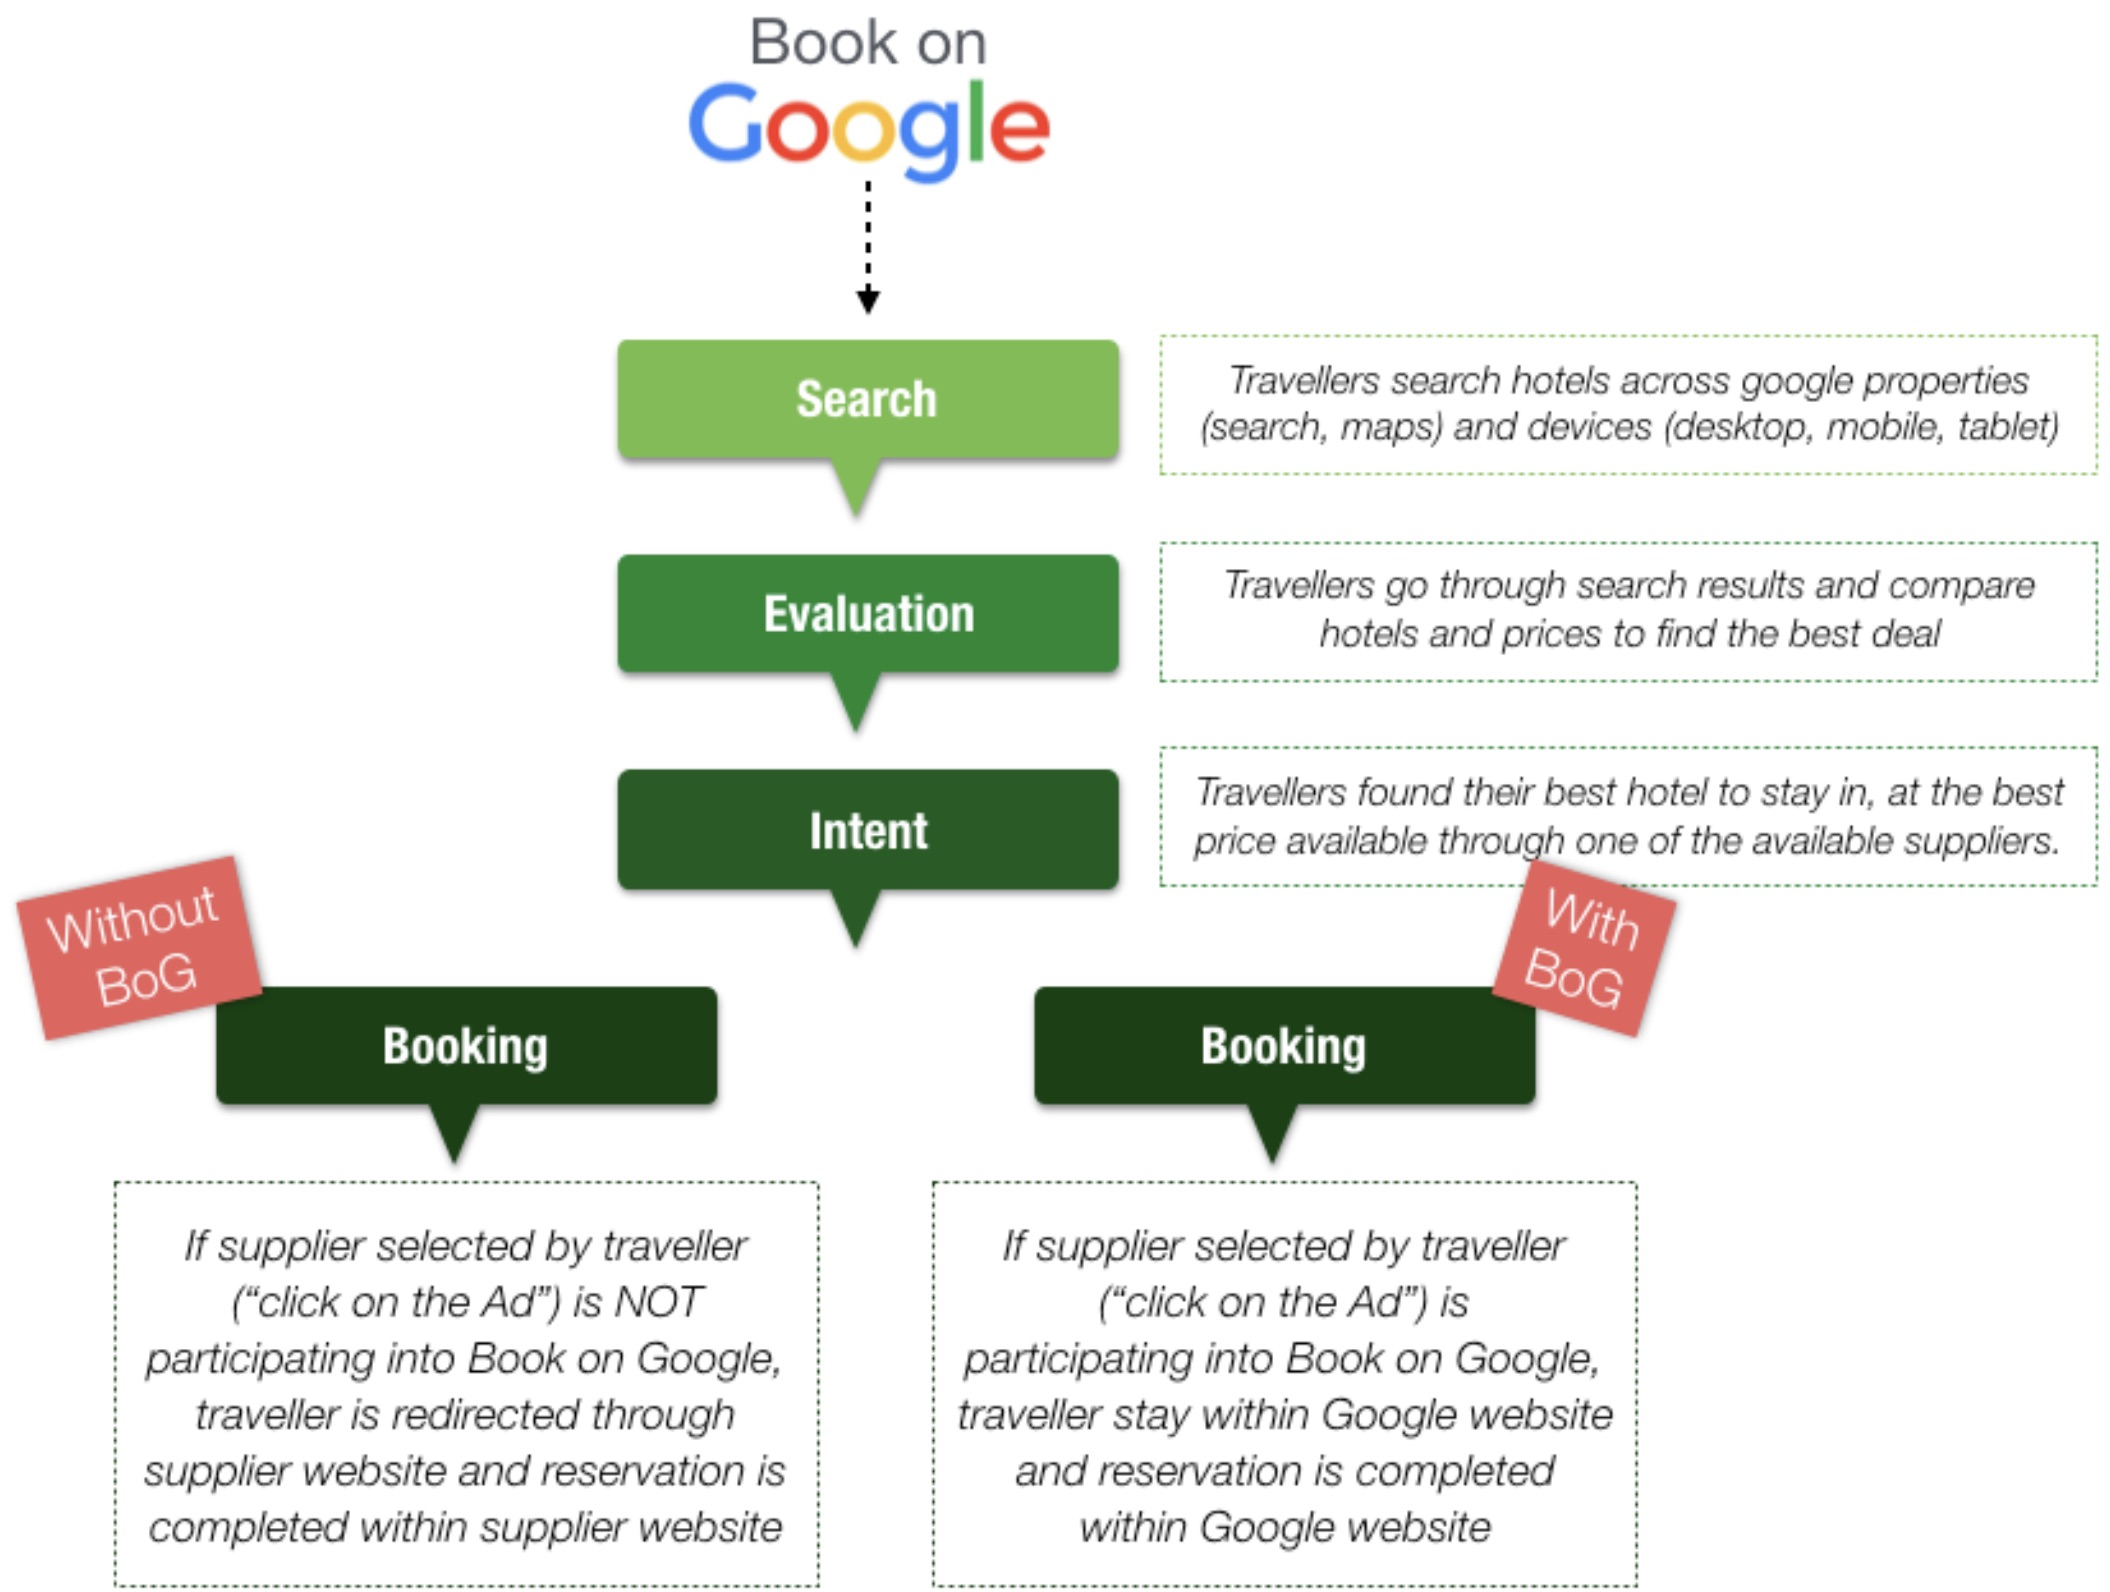 The Book on Google booking flow